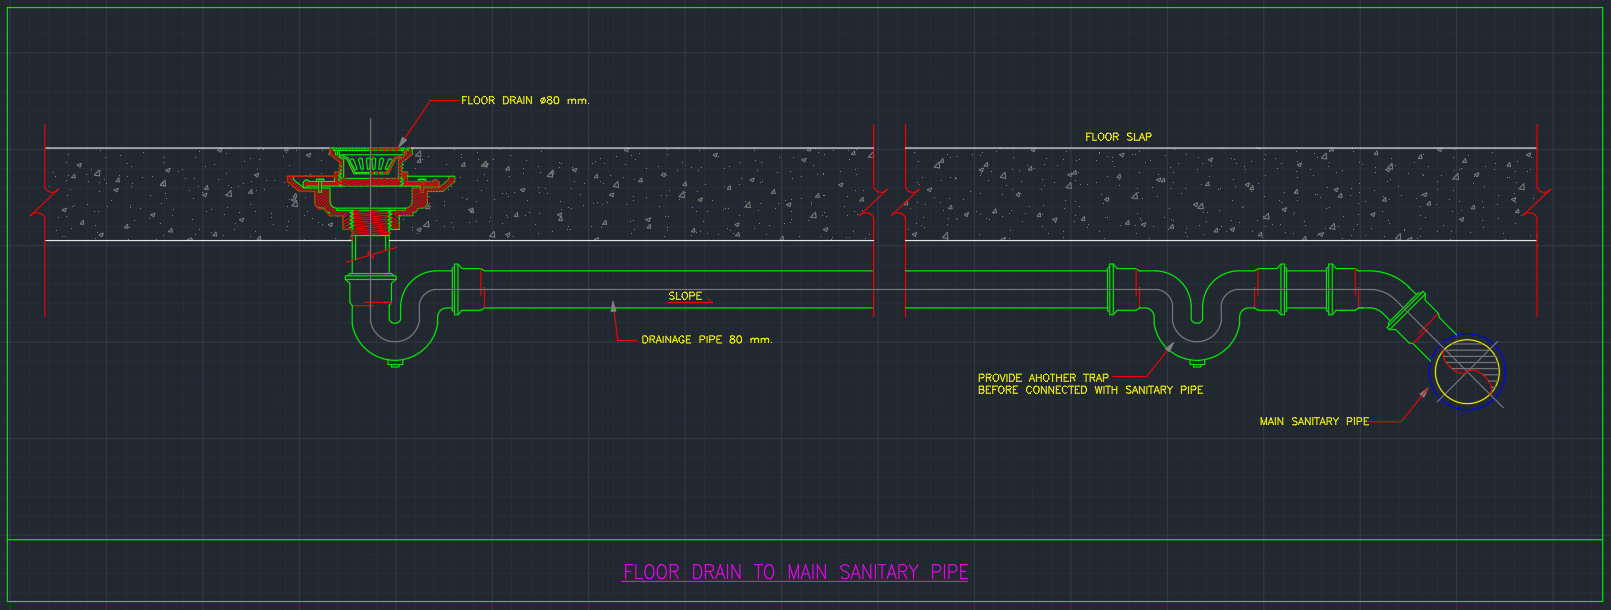 Floor Drain Cad Block And Typical Drawing